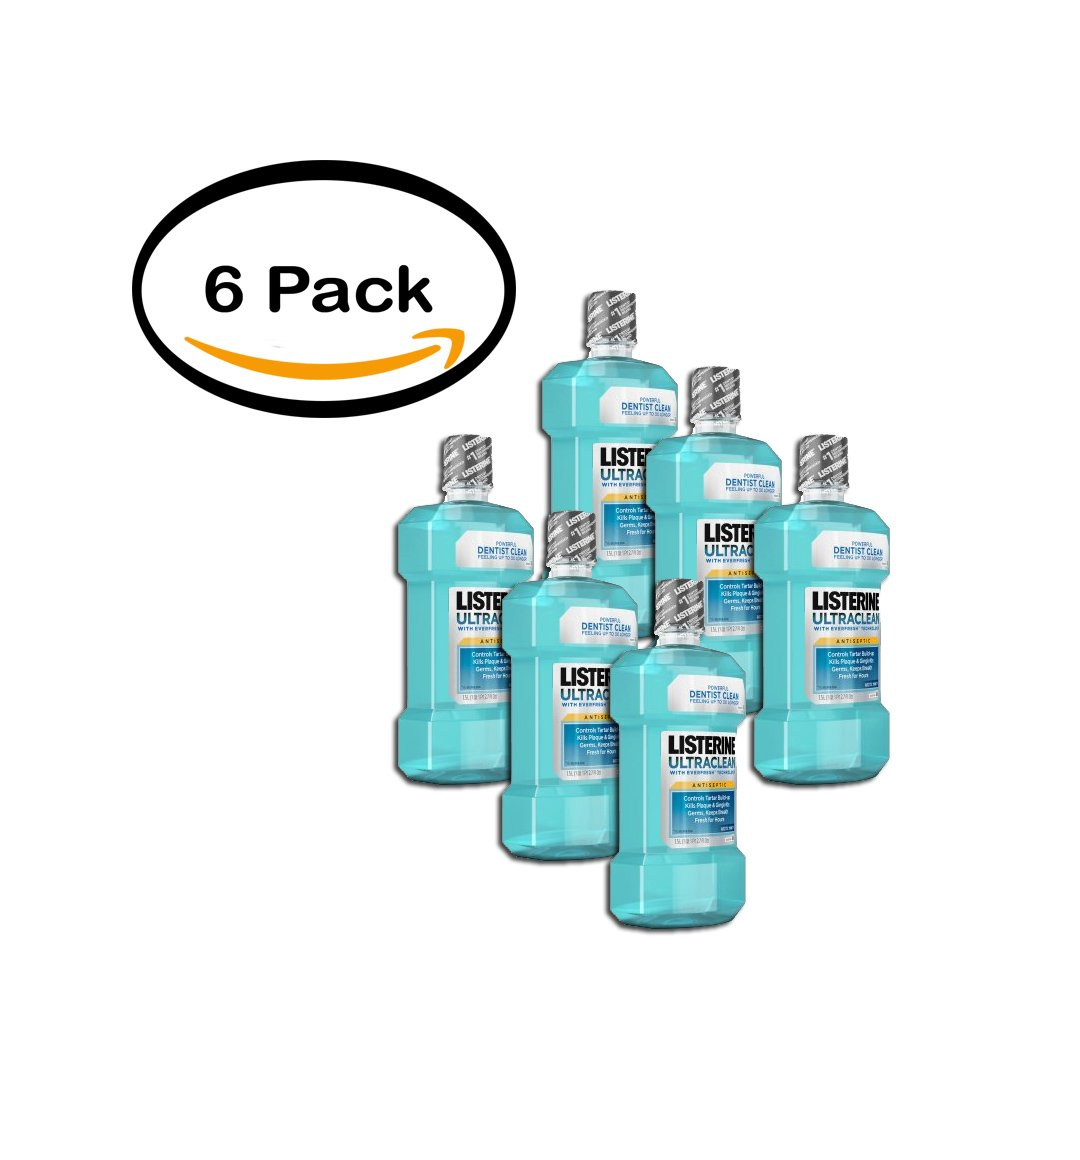 PACK OF 6 - Listerine UltraClean Arctic Mint Antiseptic Mouthwash, 1.5 l